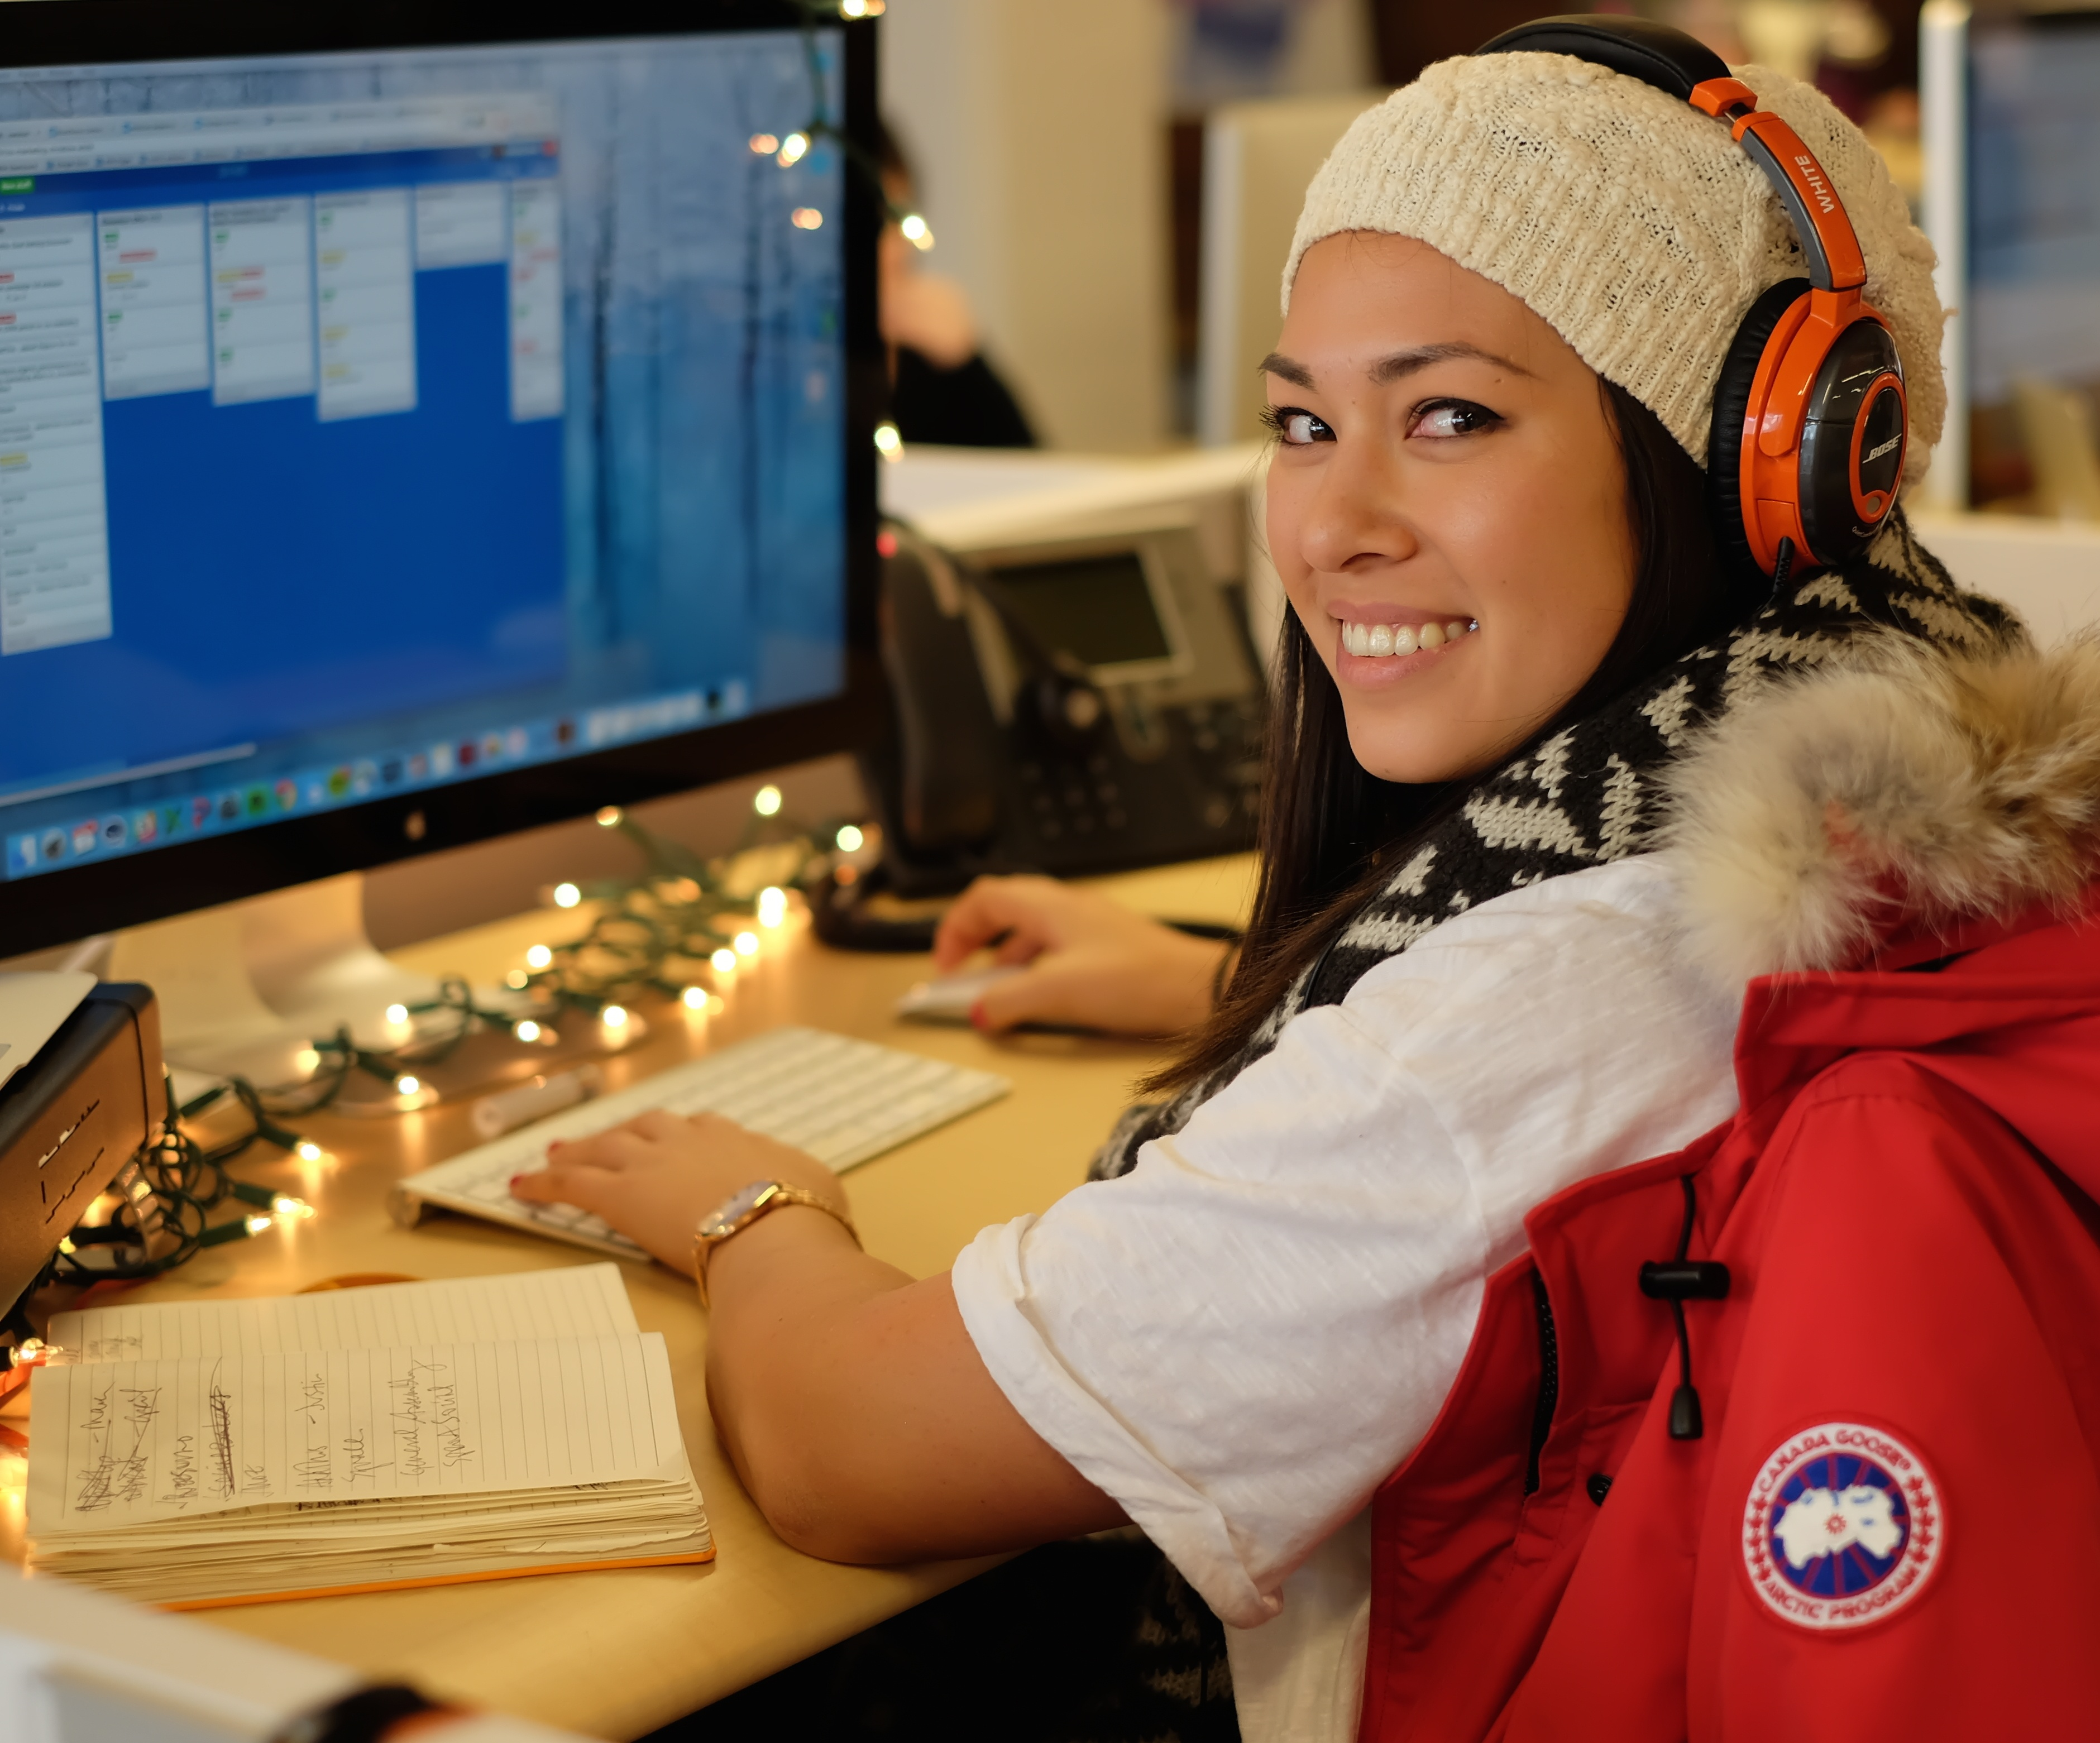 Edited_woman-smiling-at-desk-while-working.jpg